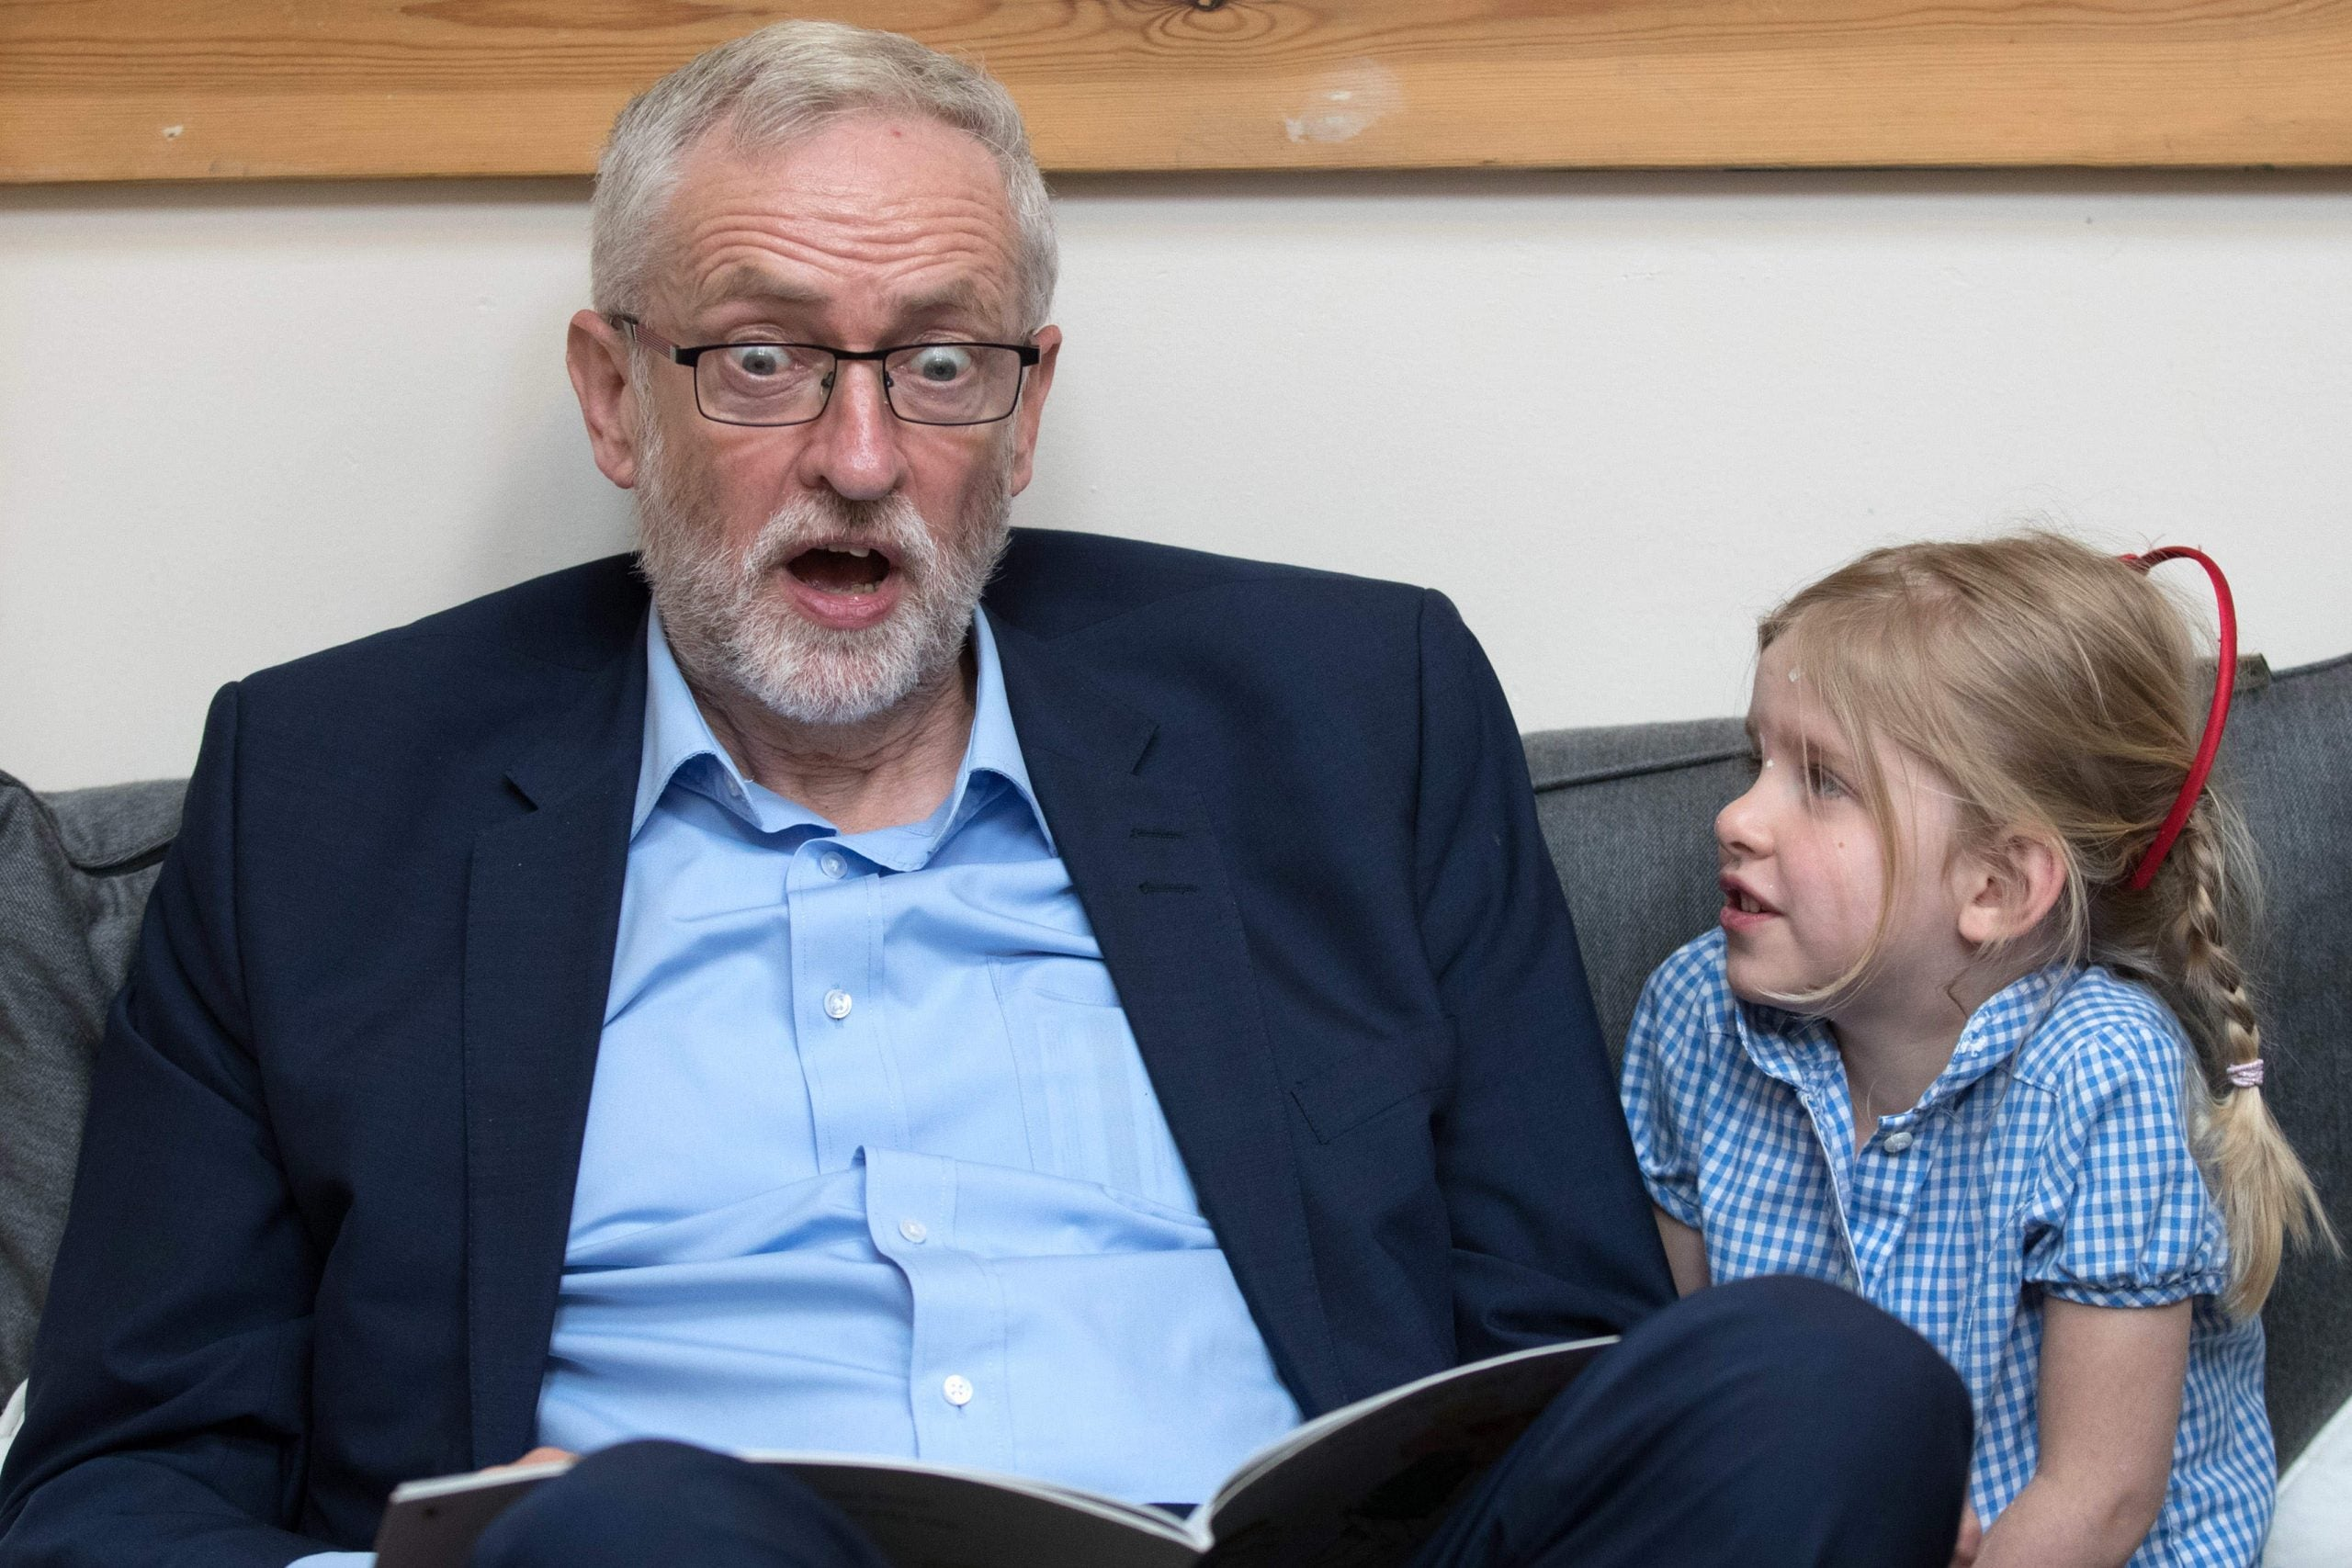 Was crying wolf over Jeremy Corbyn a mistake for the right-wing press?